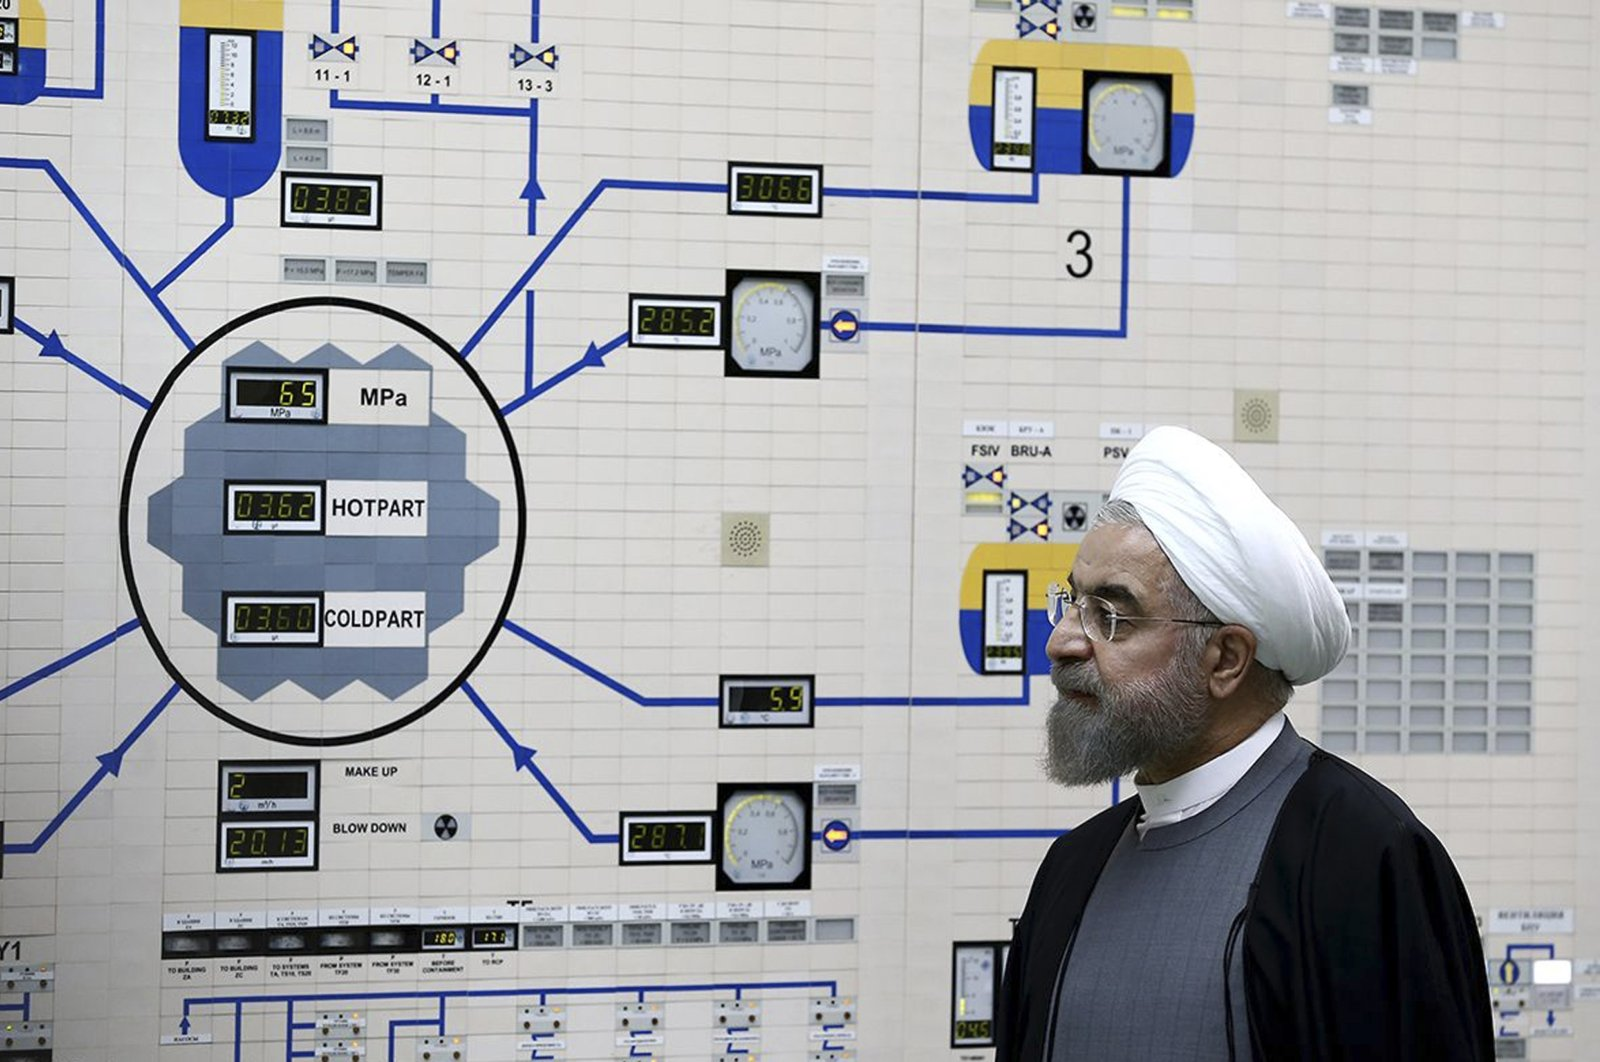 President Hassan Rouhani visits the Bushehr nuclear power plant just outside of Bushehr, Iran, Jan. 13, 2015. (Iranian President's Office via AP Photo)